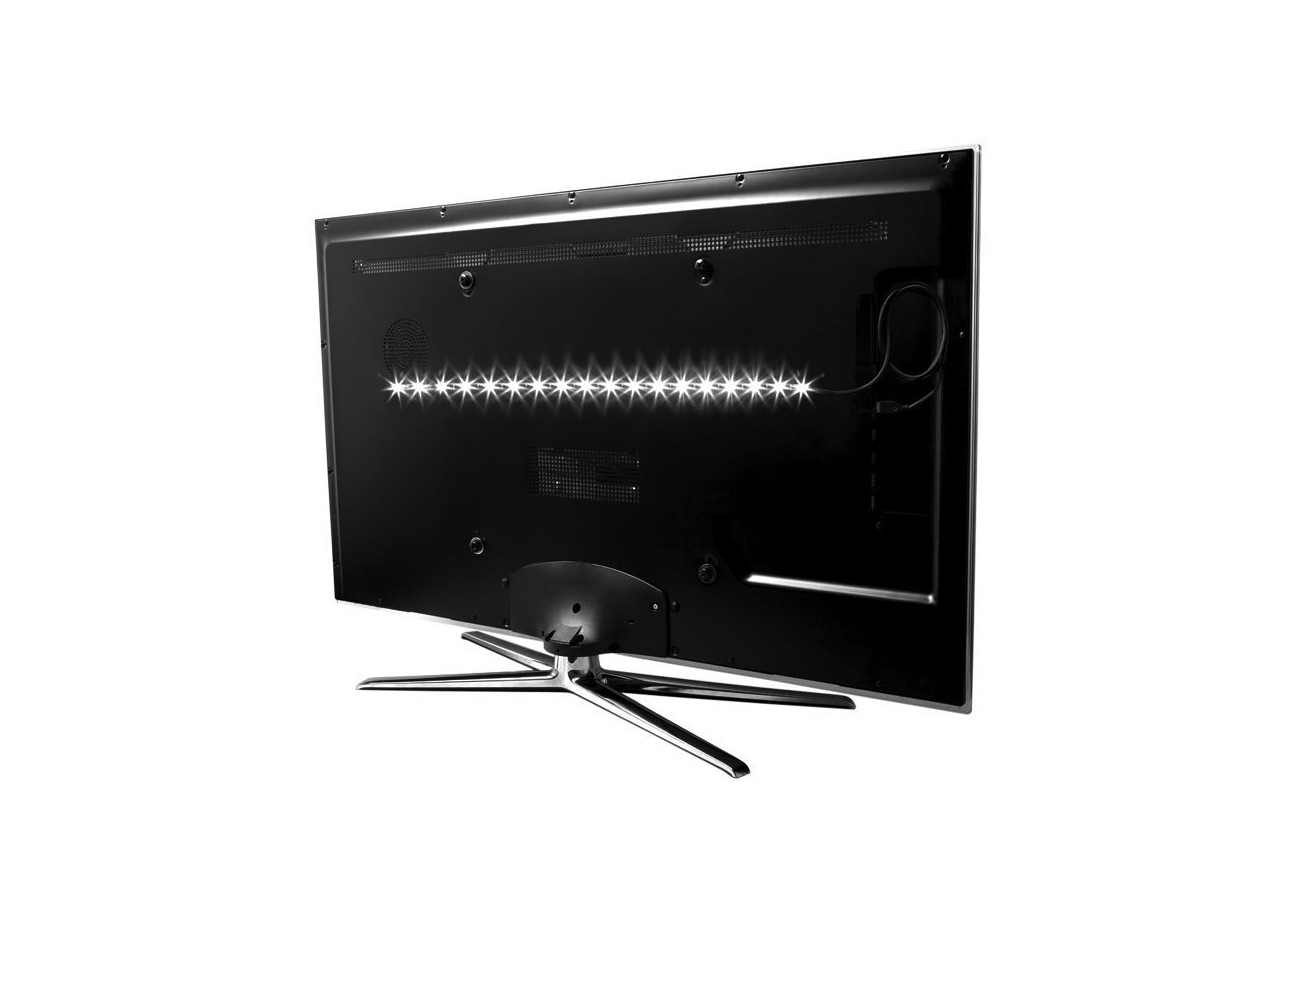 Antec USB Powered HDTV Bias Lighting